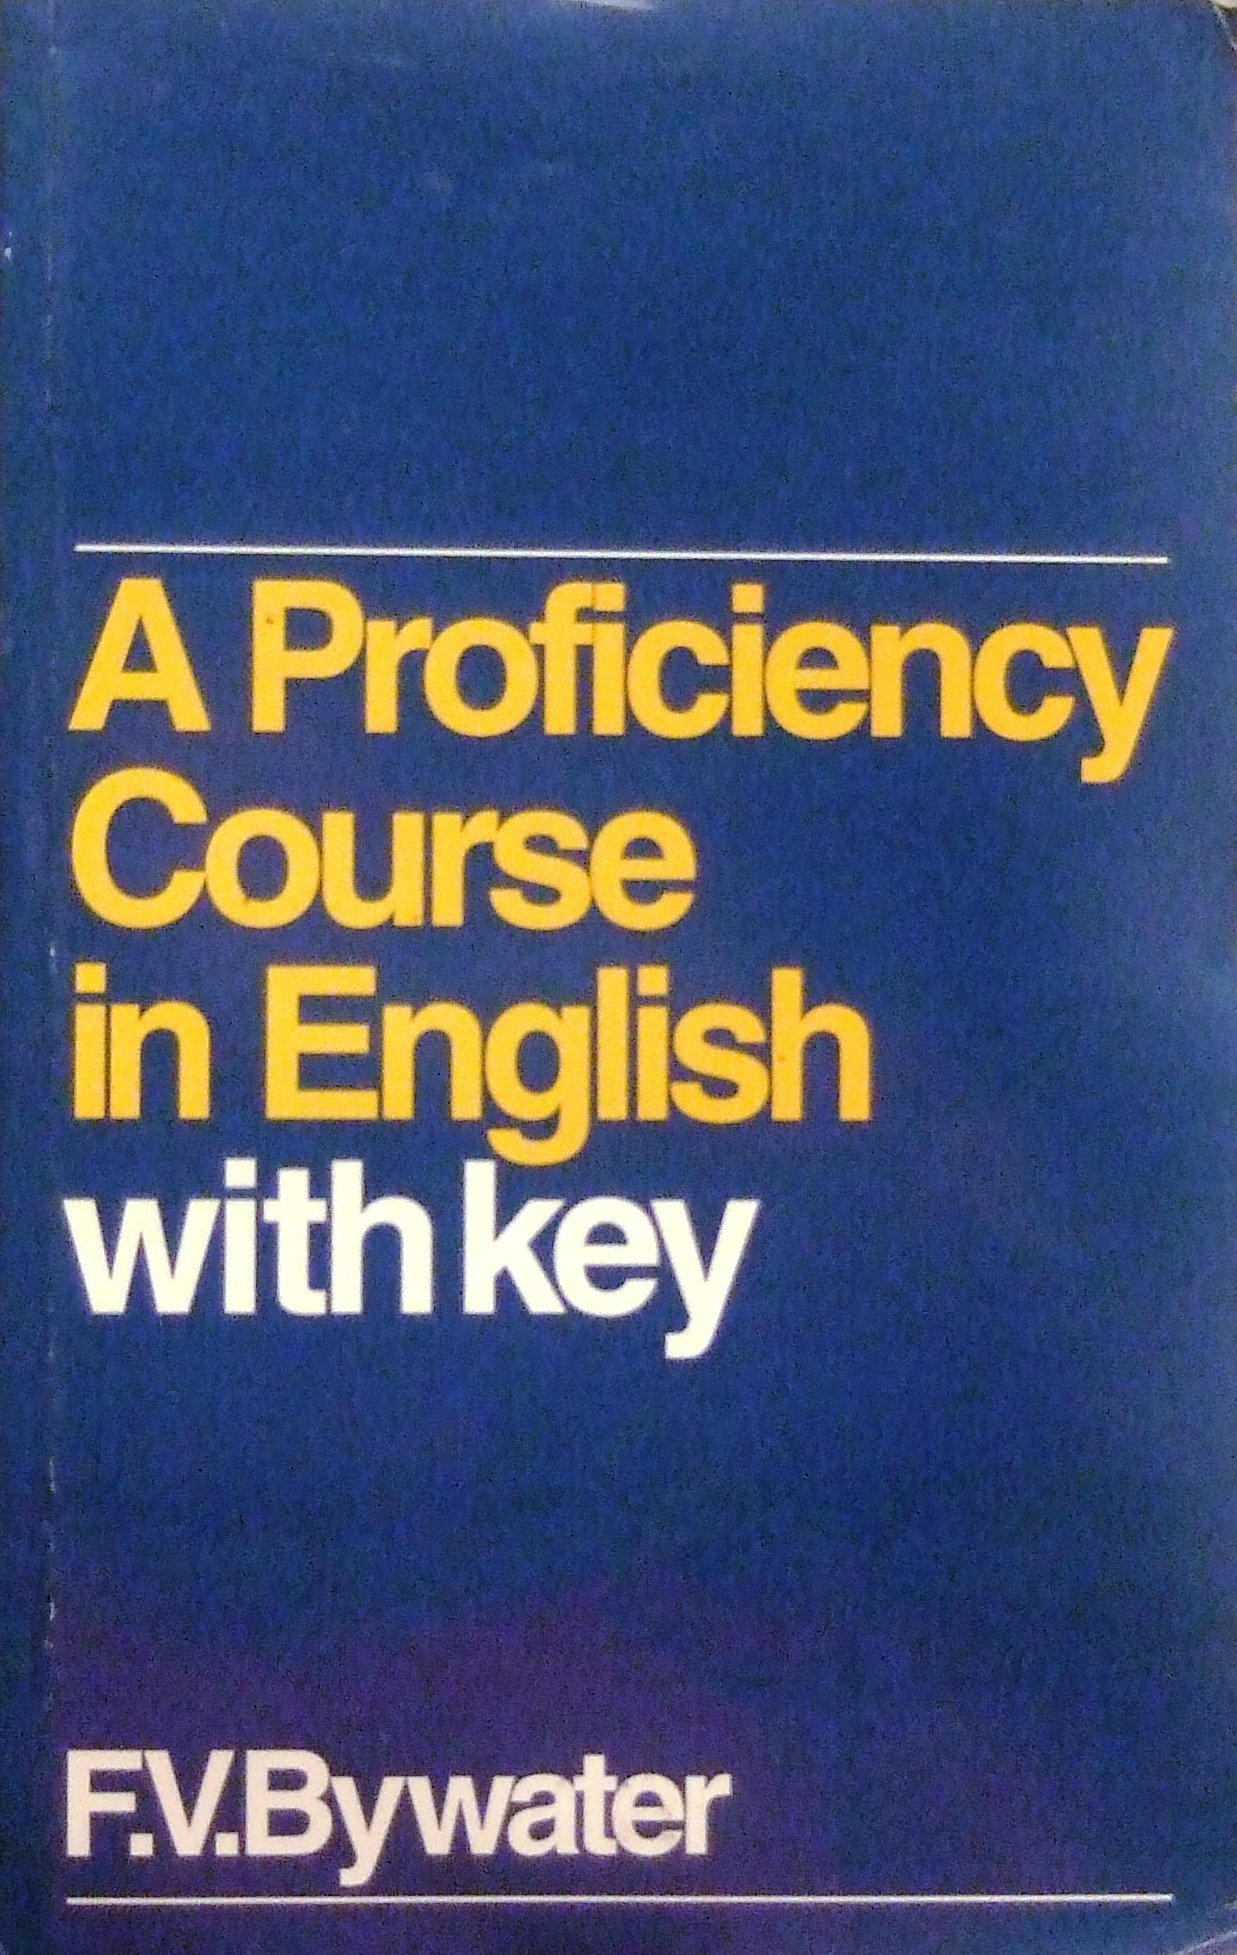 Image result for a proficiency course in english with key pdf